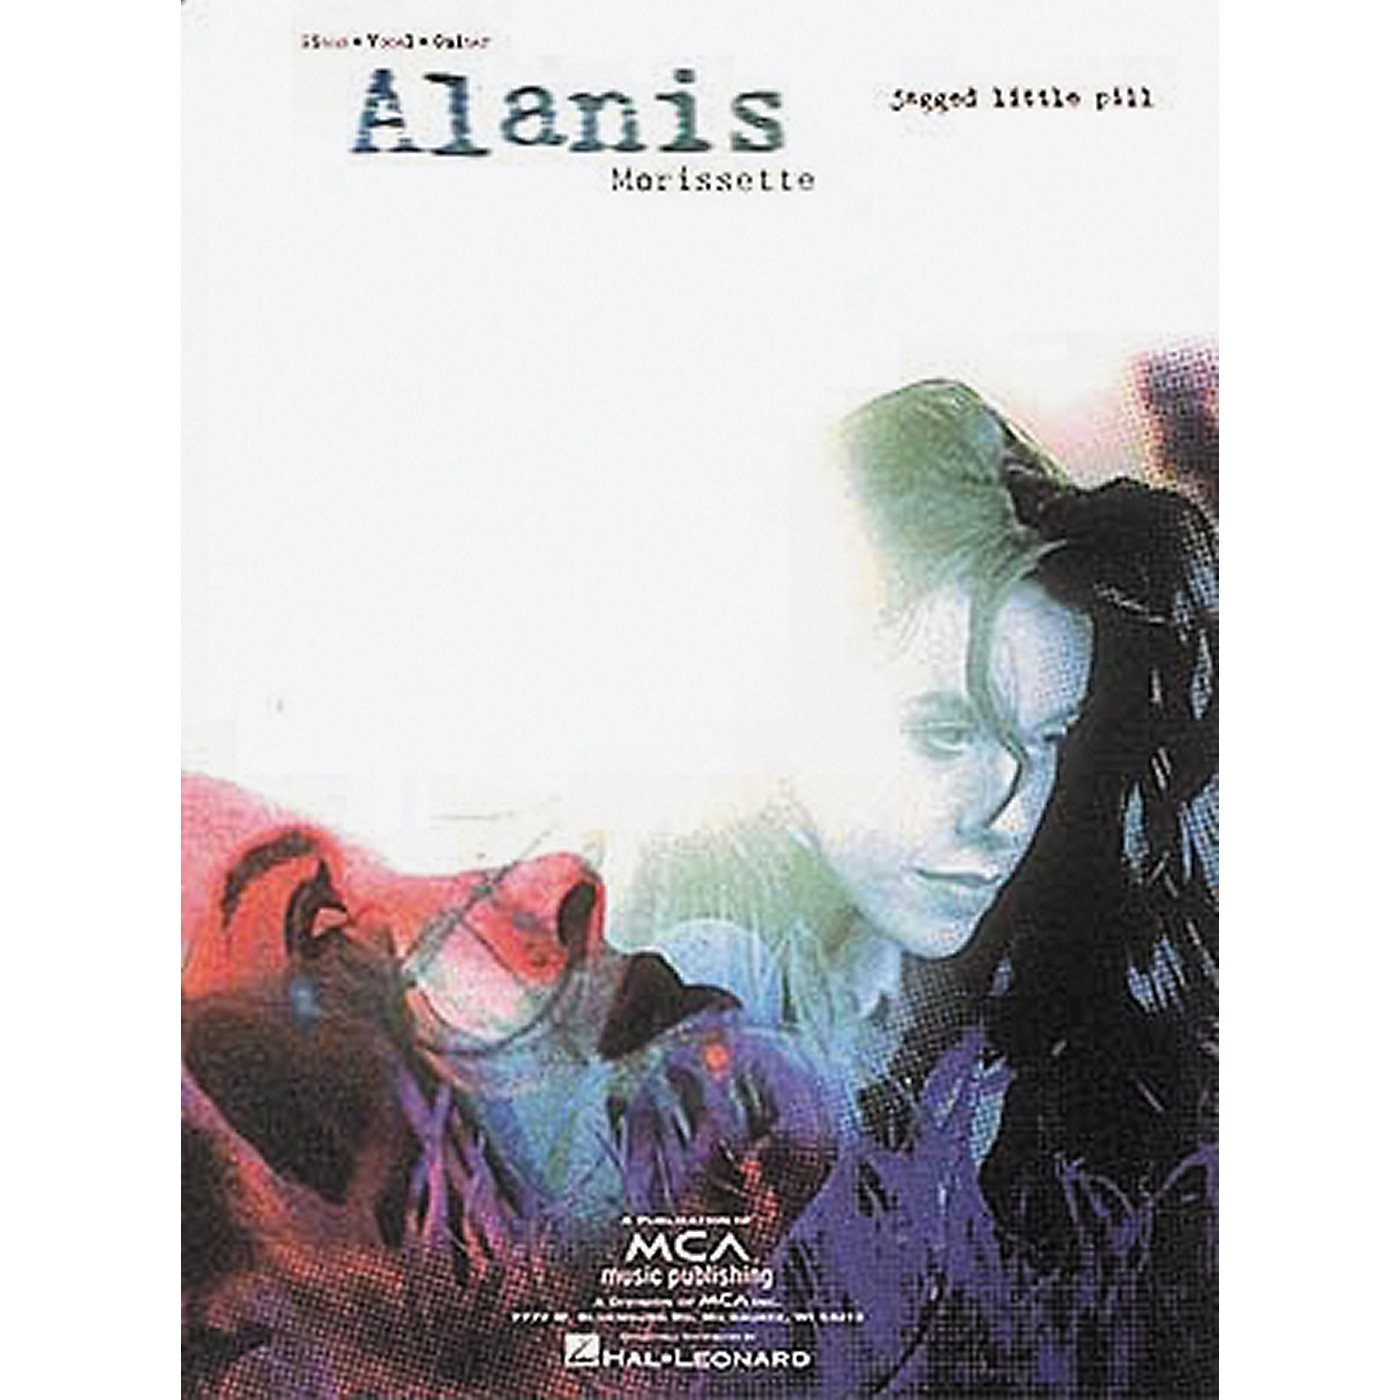 Hal Leonard Alanis Morissette Jagged Little Pill Piano, Vocal, Guitar Songbook thumbnail